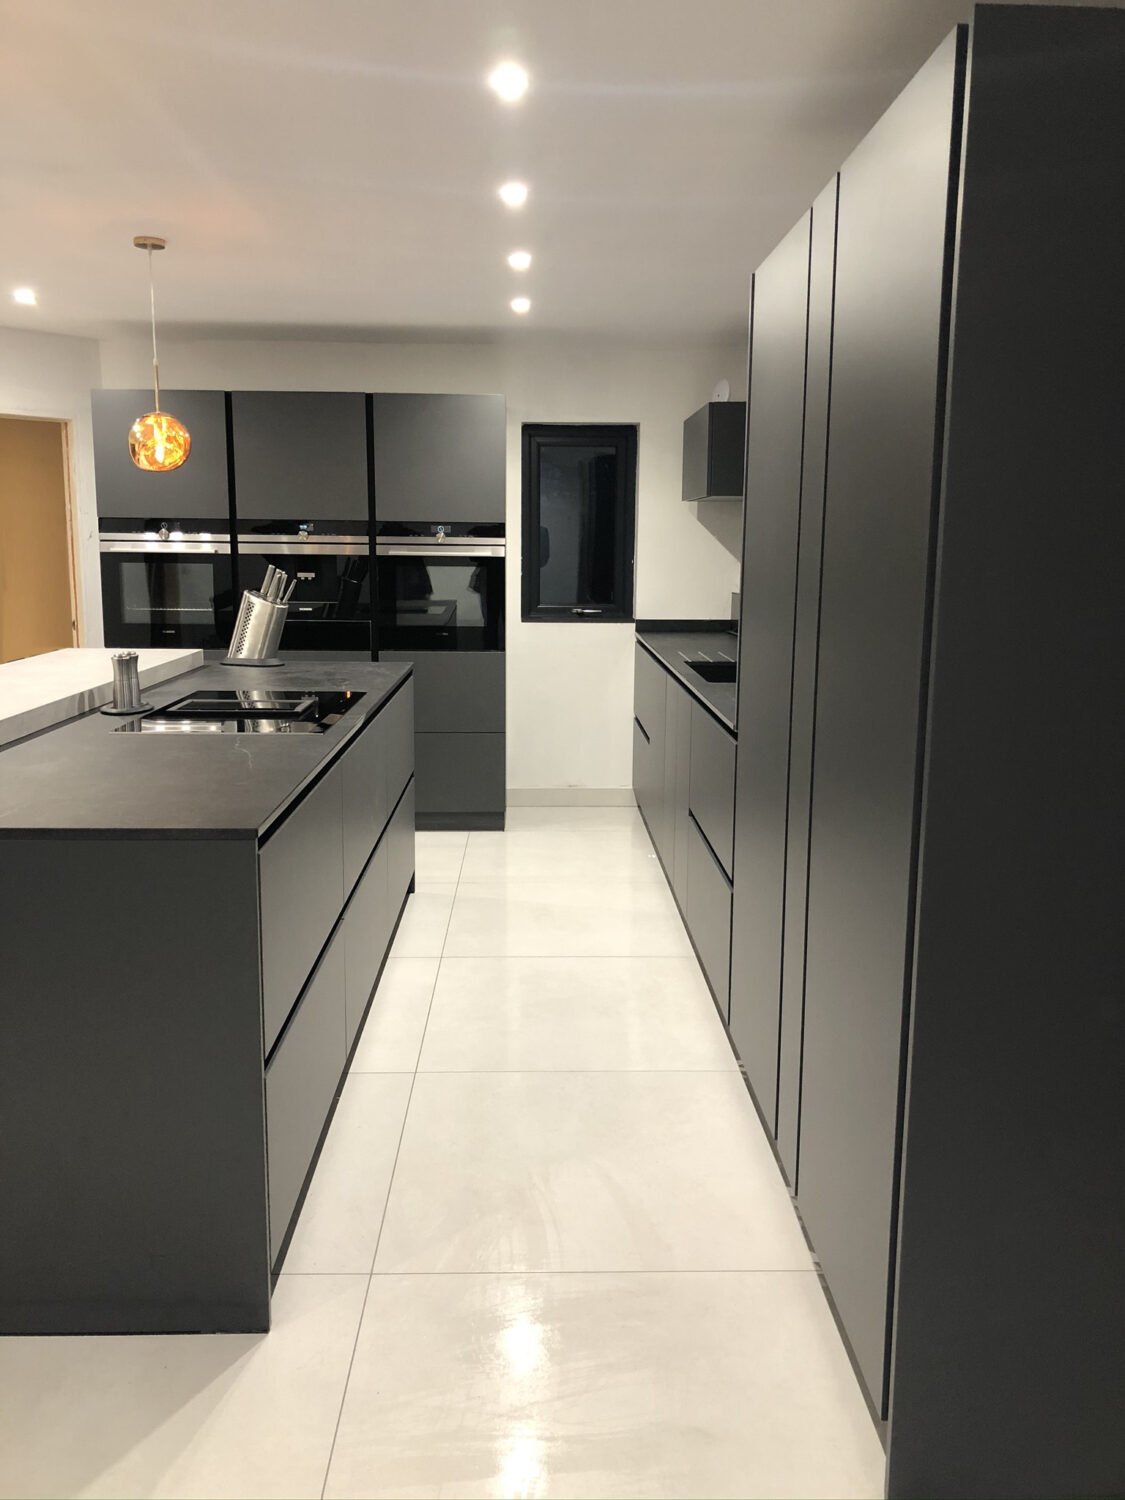 Commercial Grow Room Design: Kitchens Cardiff - Kitchen Design Cardiff